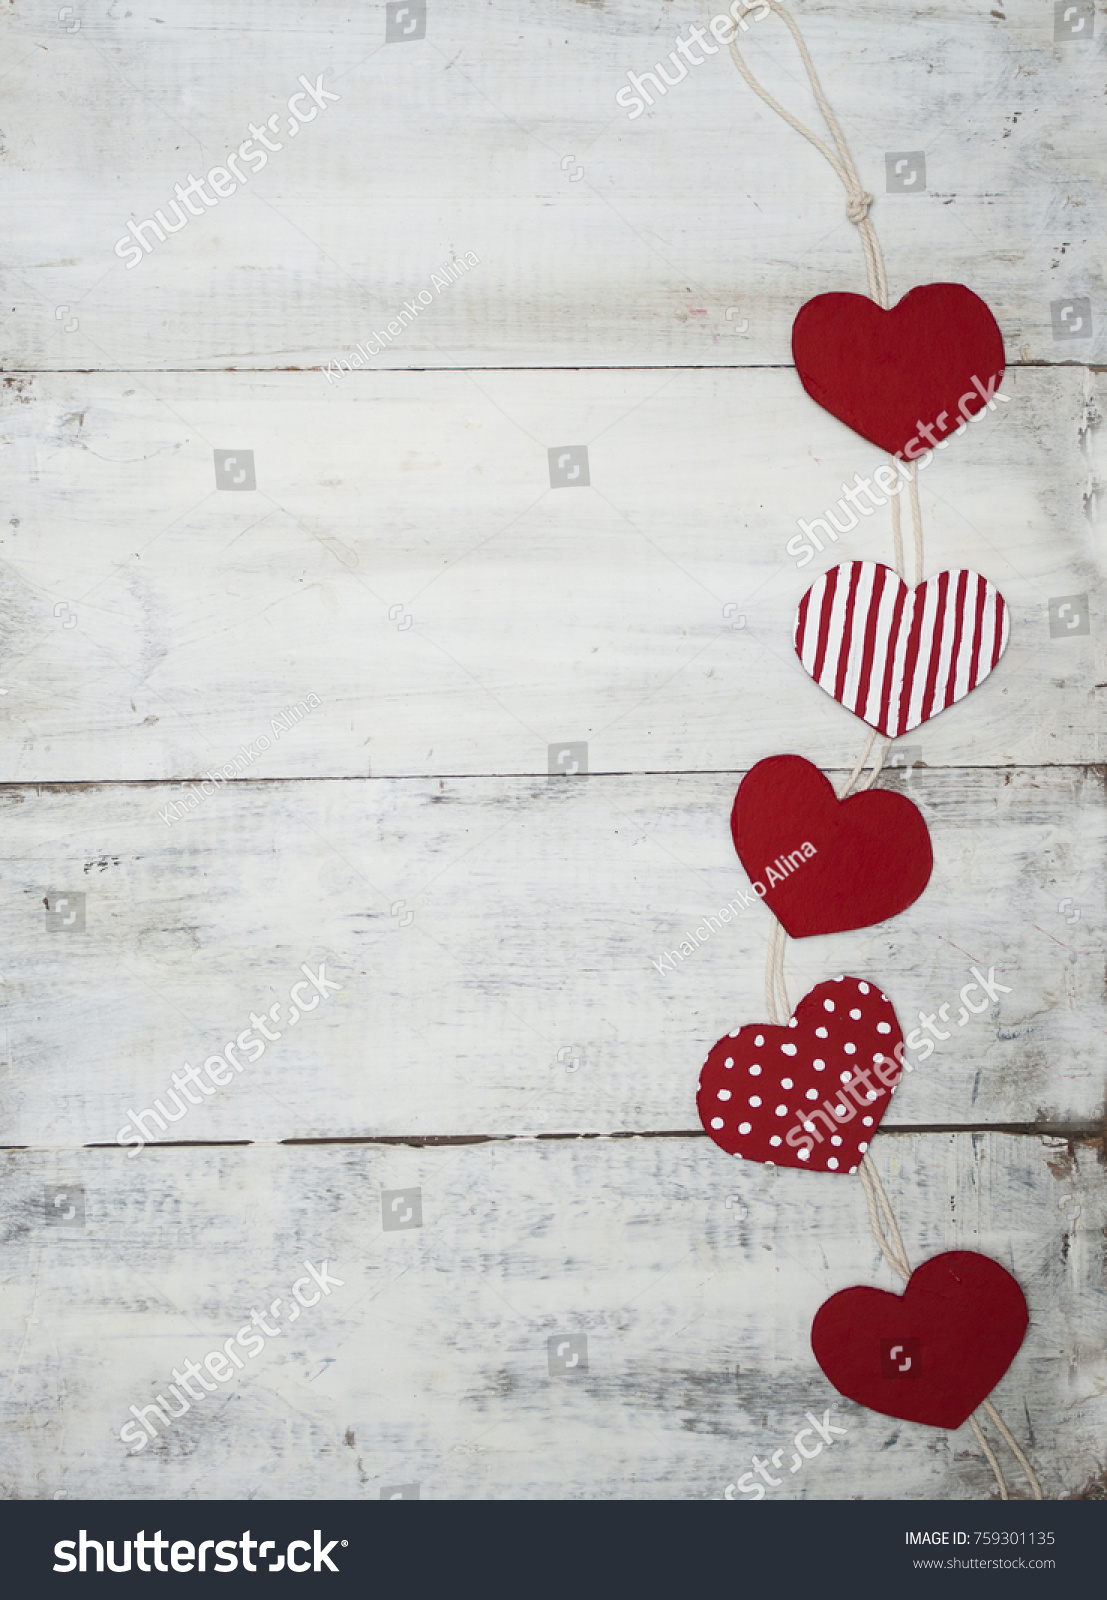 Red Heartshaped Symbols Hanging On Wooden Stock Photo 759301135